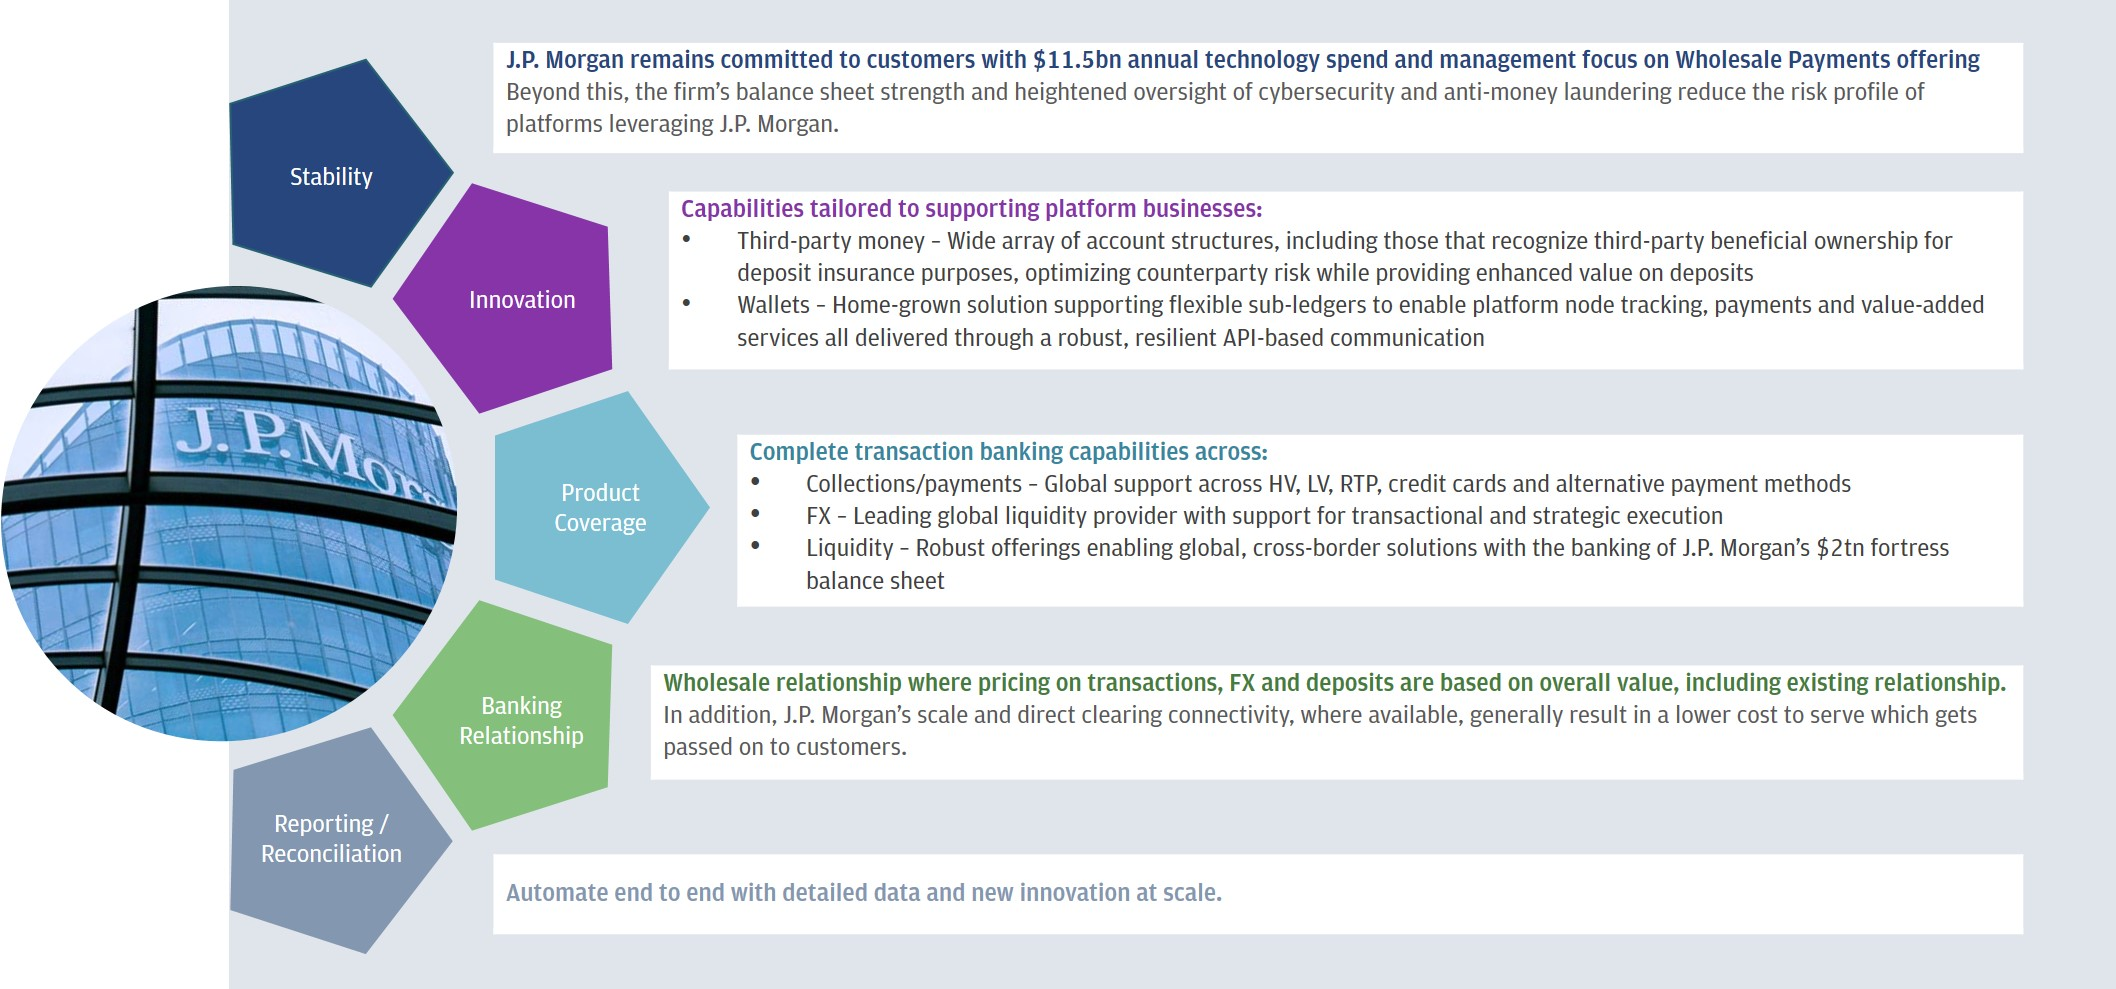 RISE PLATFORMS Exhibit 4 - JPMorgan value proposition to platform businesses